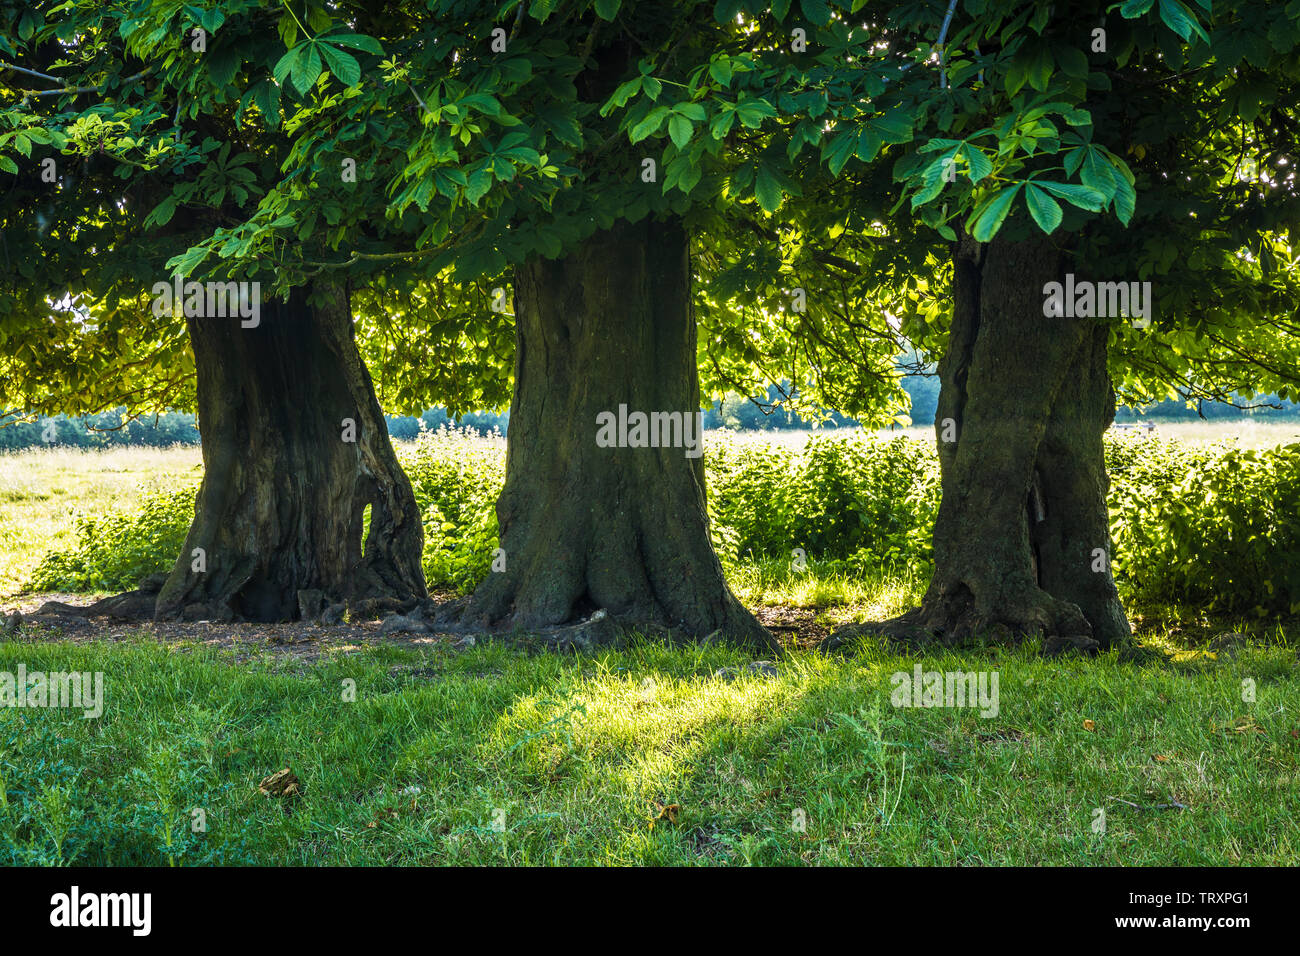 Three Horse Chestnut trees (Aesculus hippocastanum) in a field on a an early summer's morning. - Stock Image